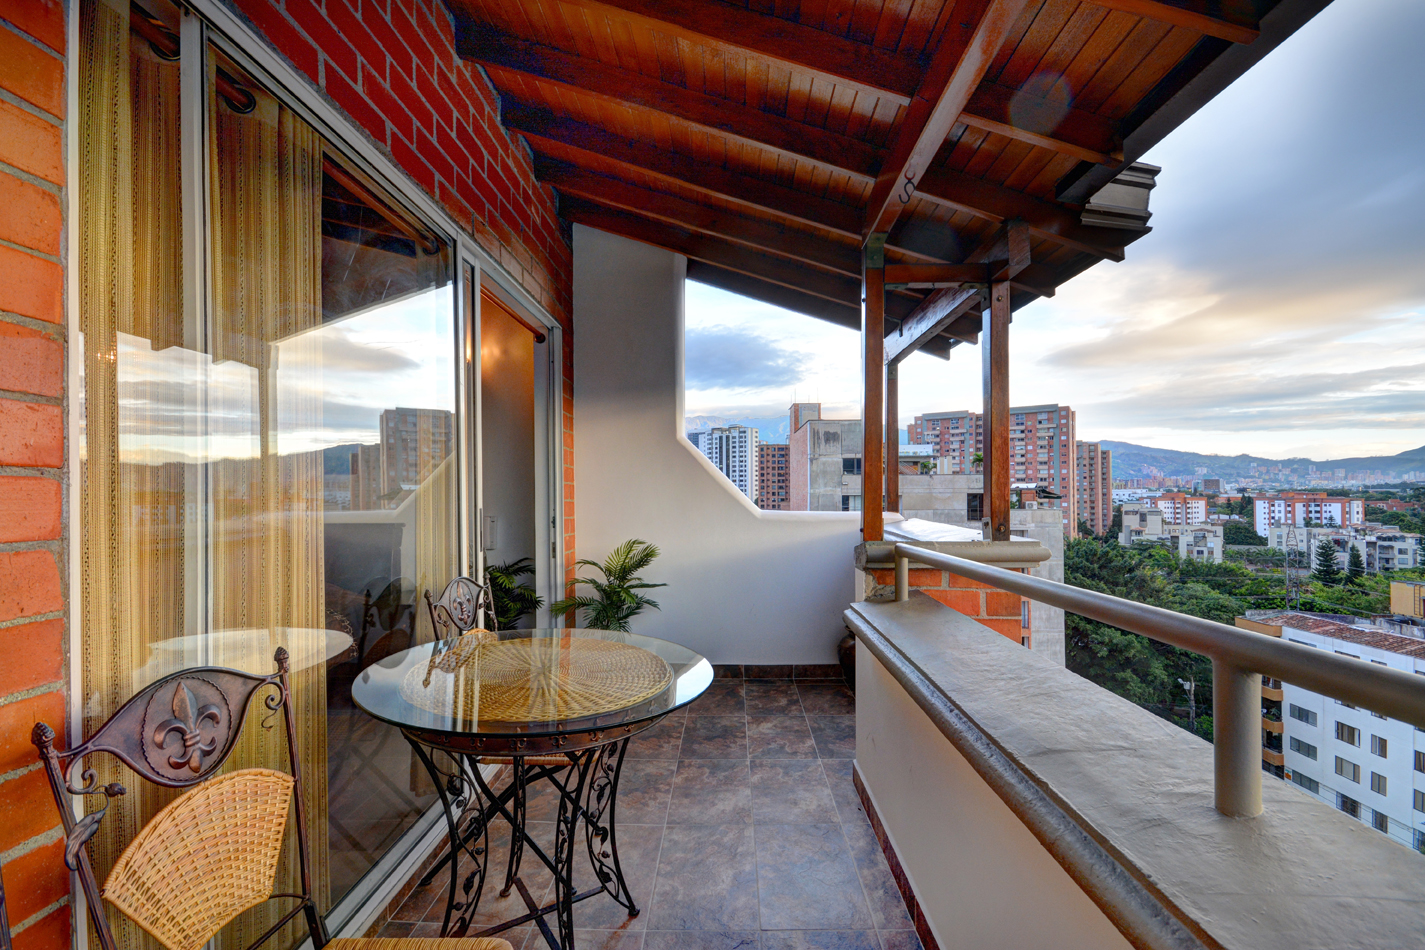 Balcony at sunset in Astorga duplex